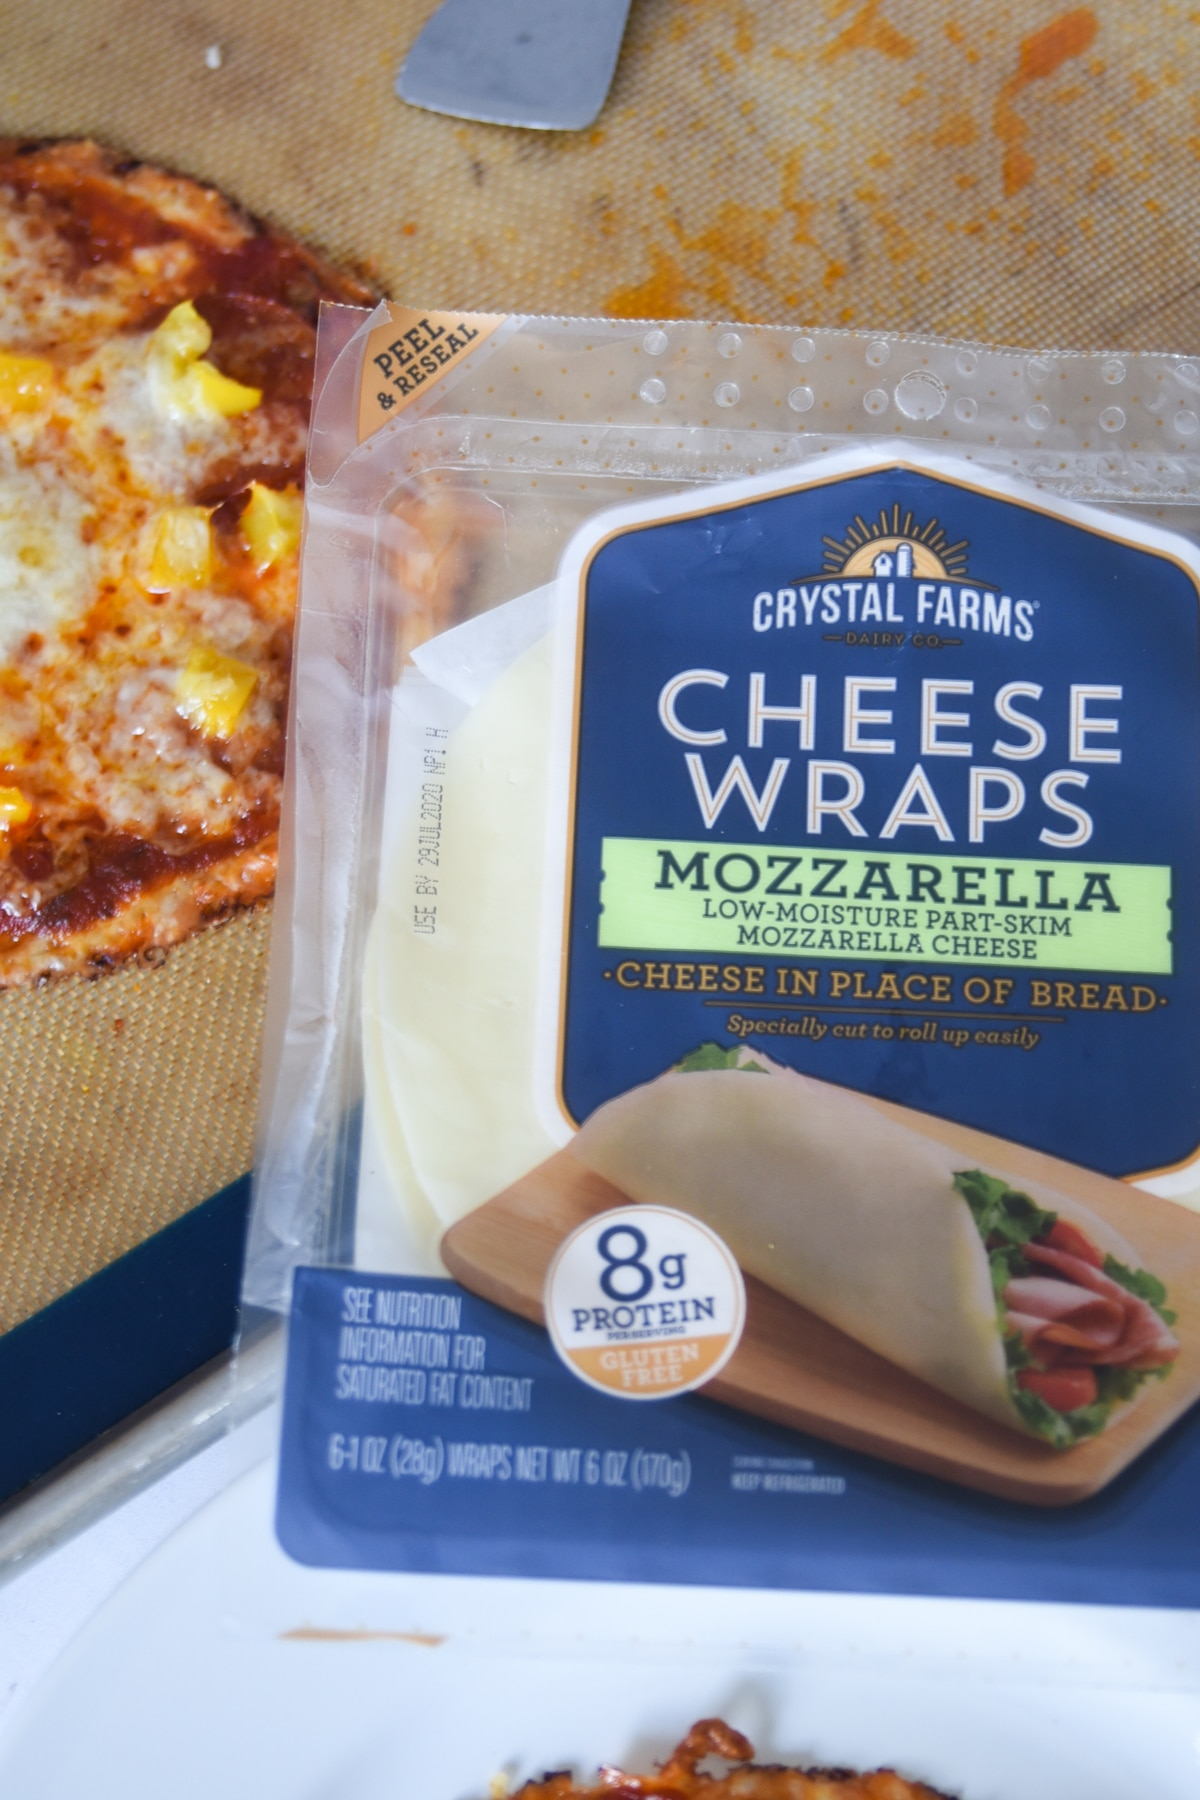 Crystal Farms Cheese Wraps next to a cheese pizza crust